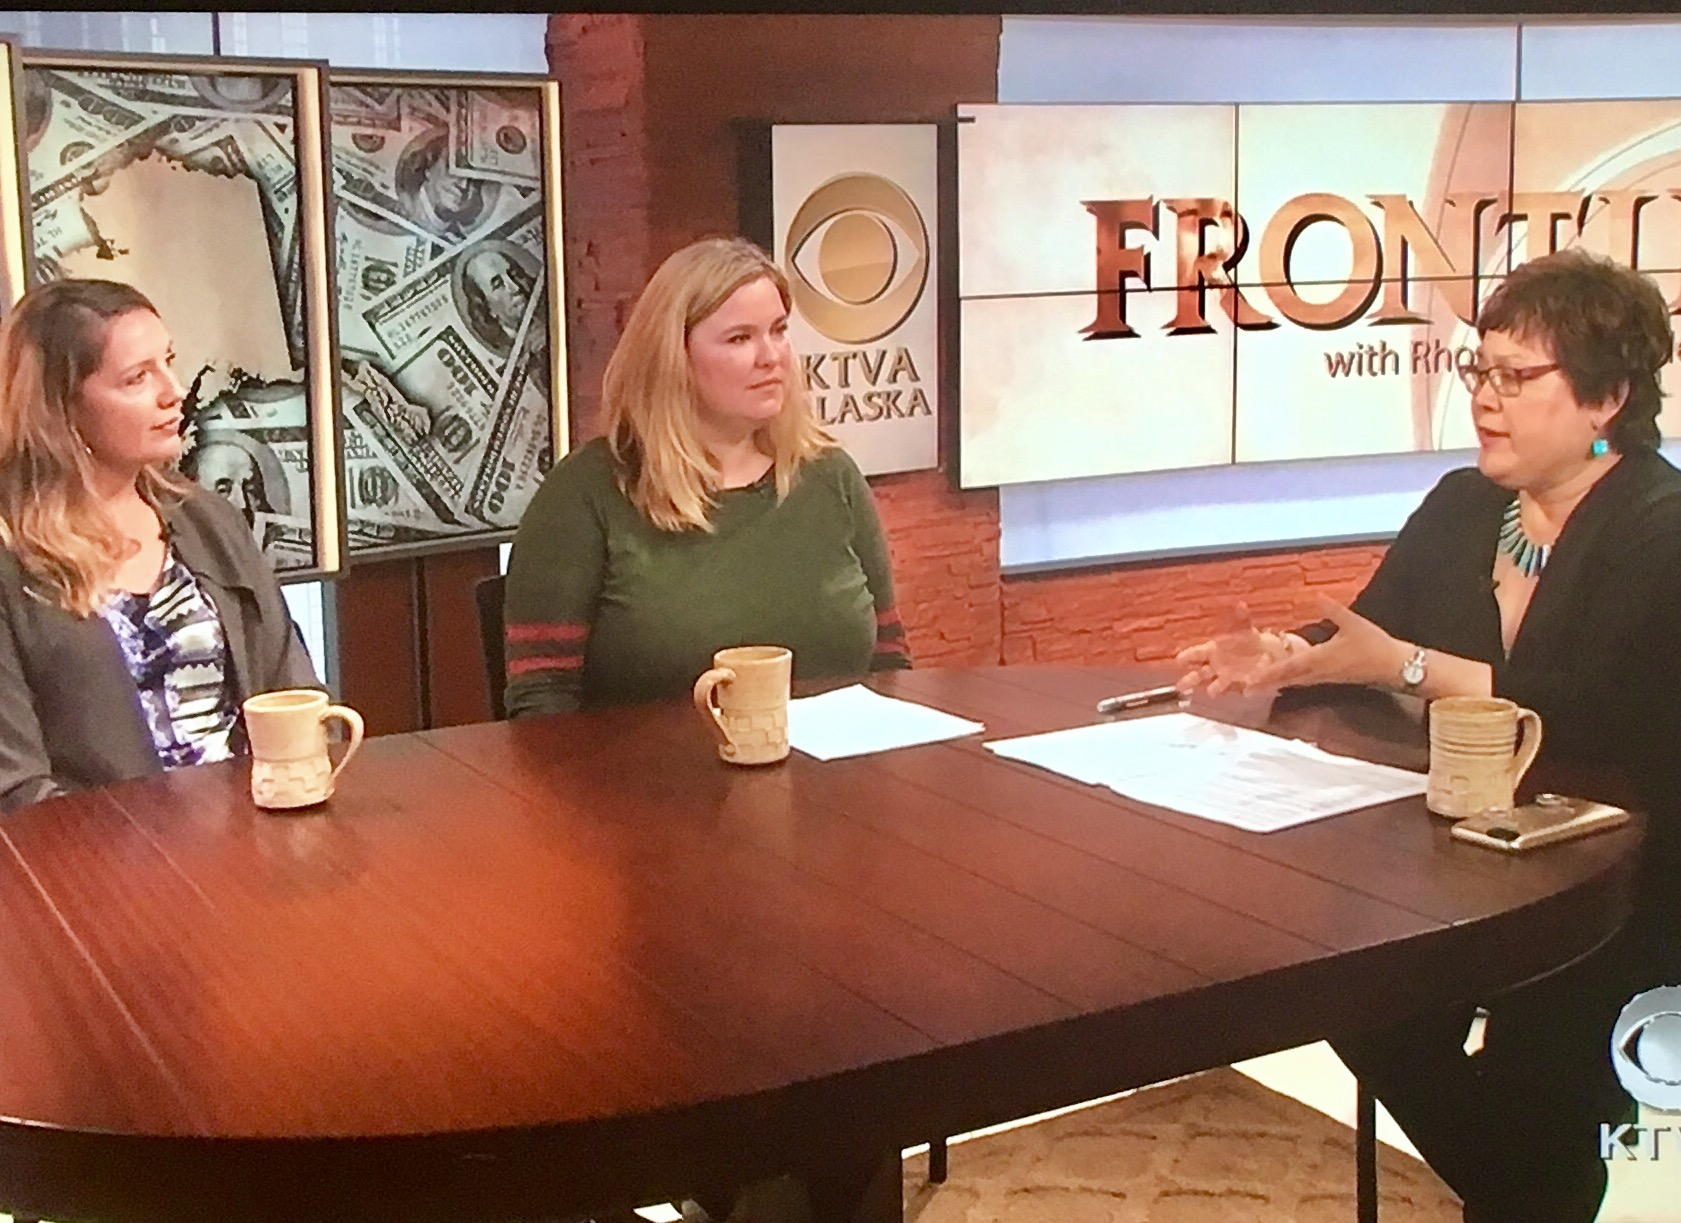 Gretchen Fauske and Katherine Jernstrom are interviewed on Frontiers with Rhonda McBride.